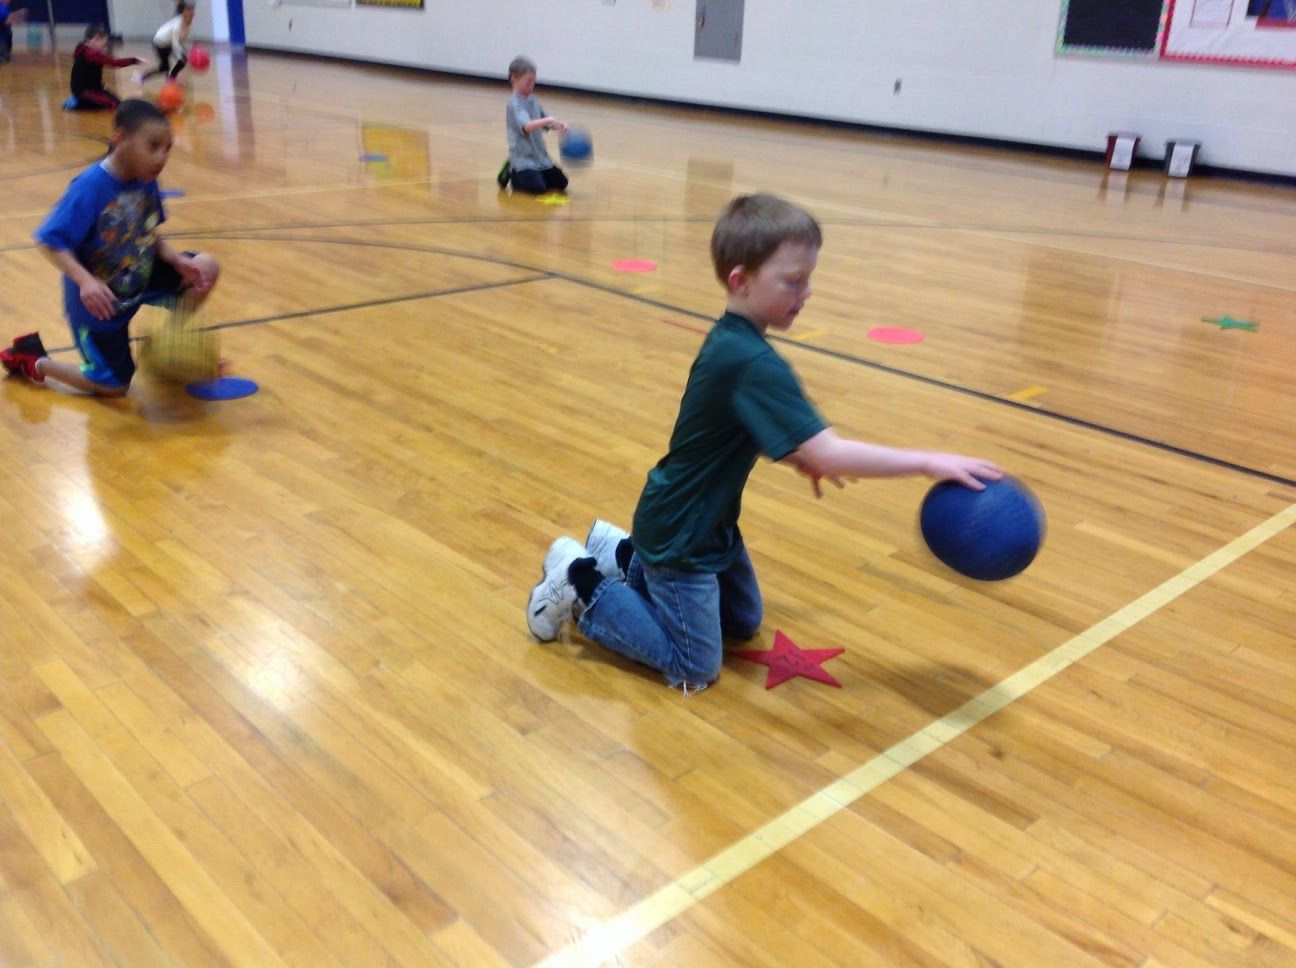 Carly S Pe Games Basketball Lessons For K 5th Grade With Minute Club Warm Up And St Patr Elementary Physical Education Physical Education Games Elementary Pe